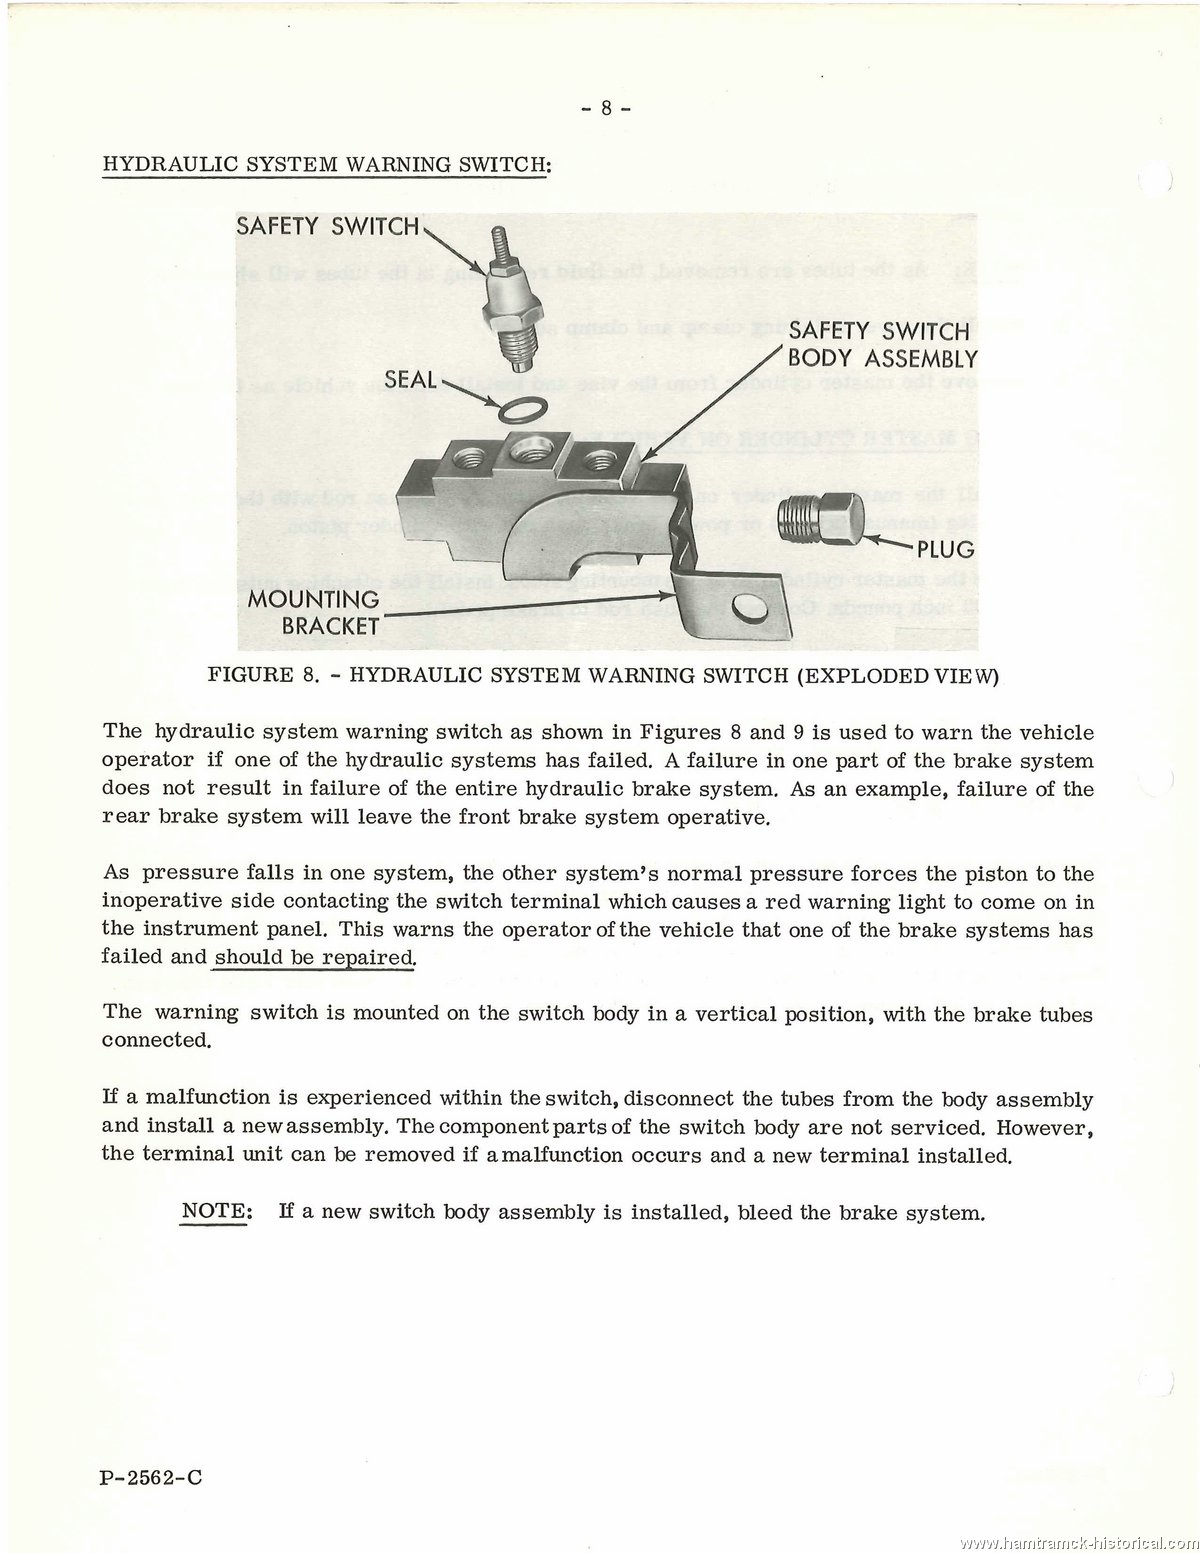 The 1970 Hamtramck Registry 1966 Tsbs And Related Material Index Page 3 8 Chrysler Engine Motor Mount Diagram 1 2 4 5 6 7